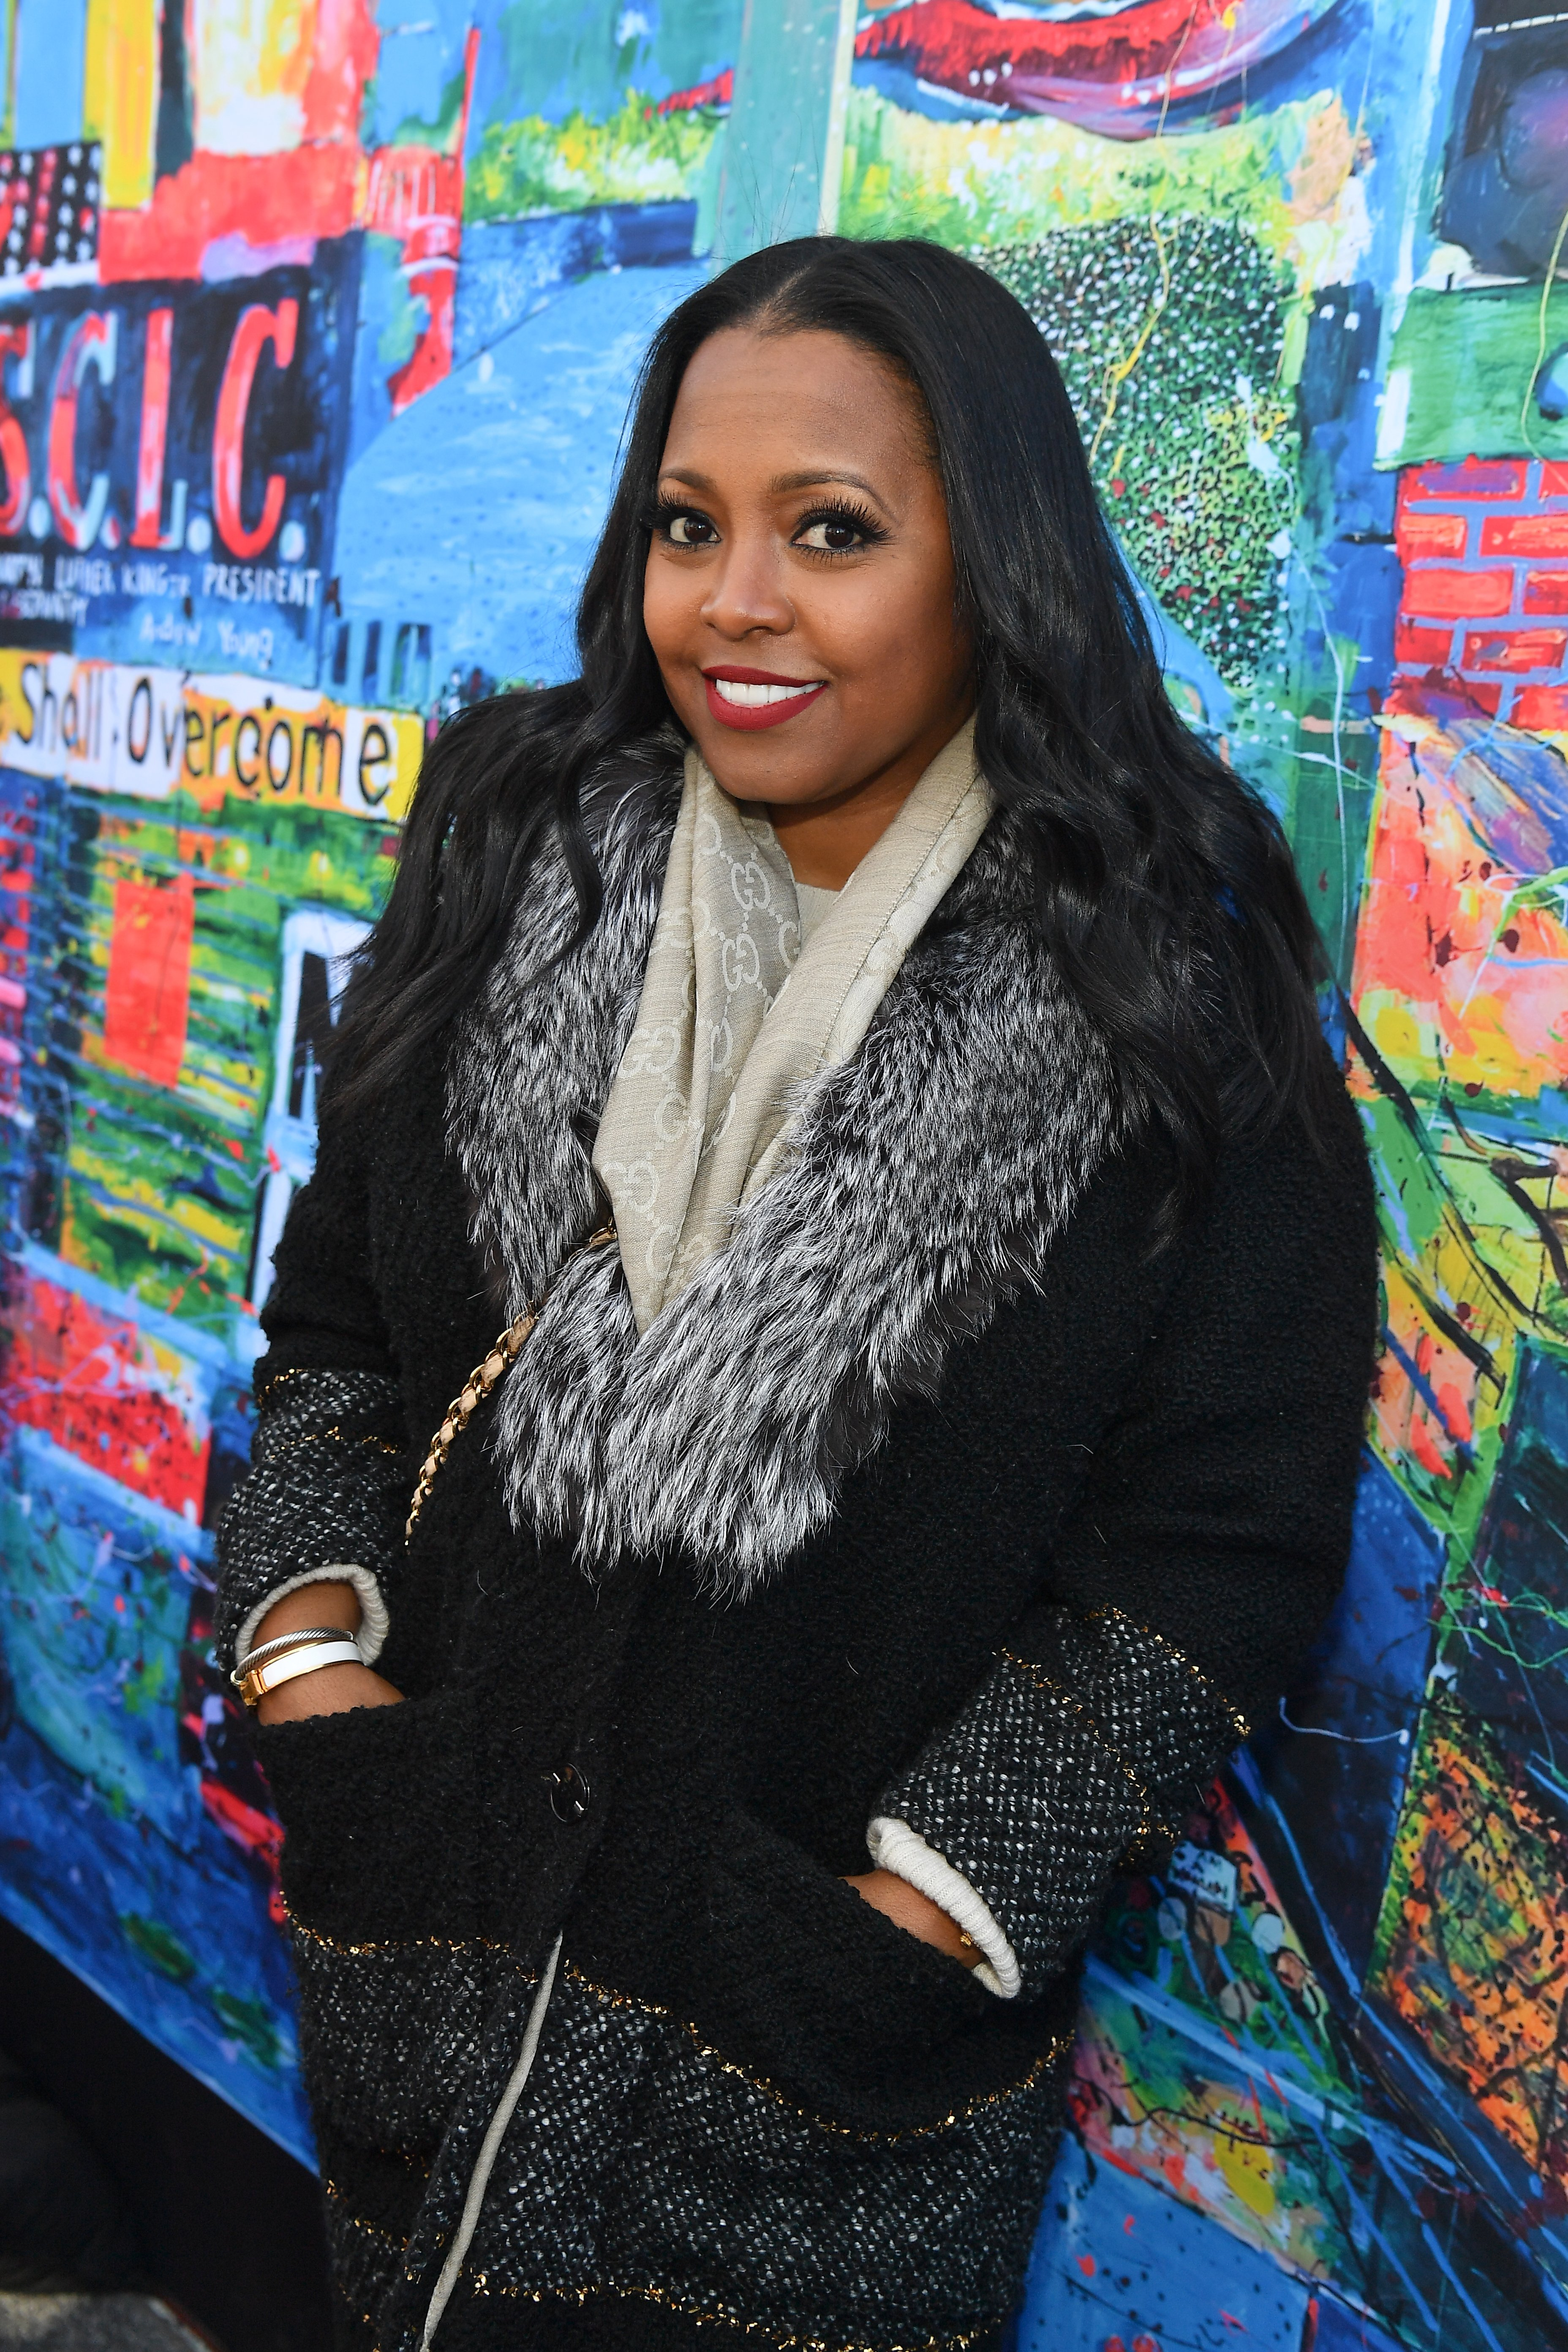 Keshia Knight Pulliam at Comcast NBCUniversal Exclusive Digital Mosaic at Ebenezer Baptist Church on Jan. 21, 2019 in Georgia | Photo: Getty Images